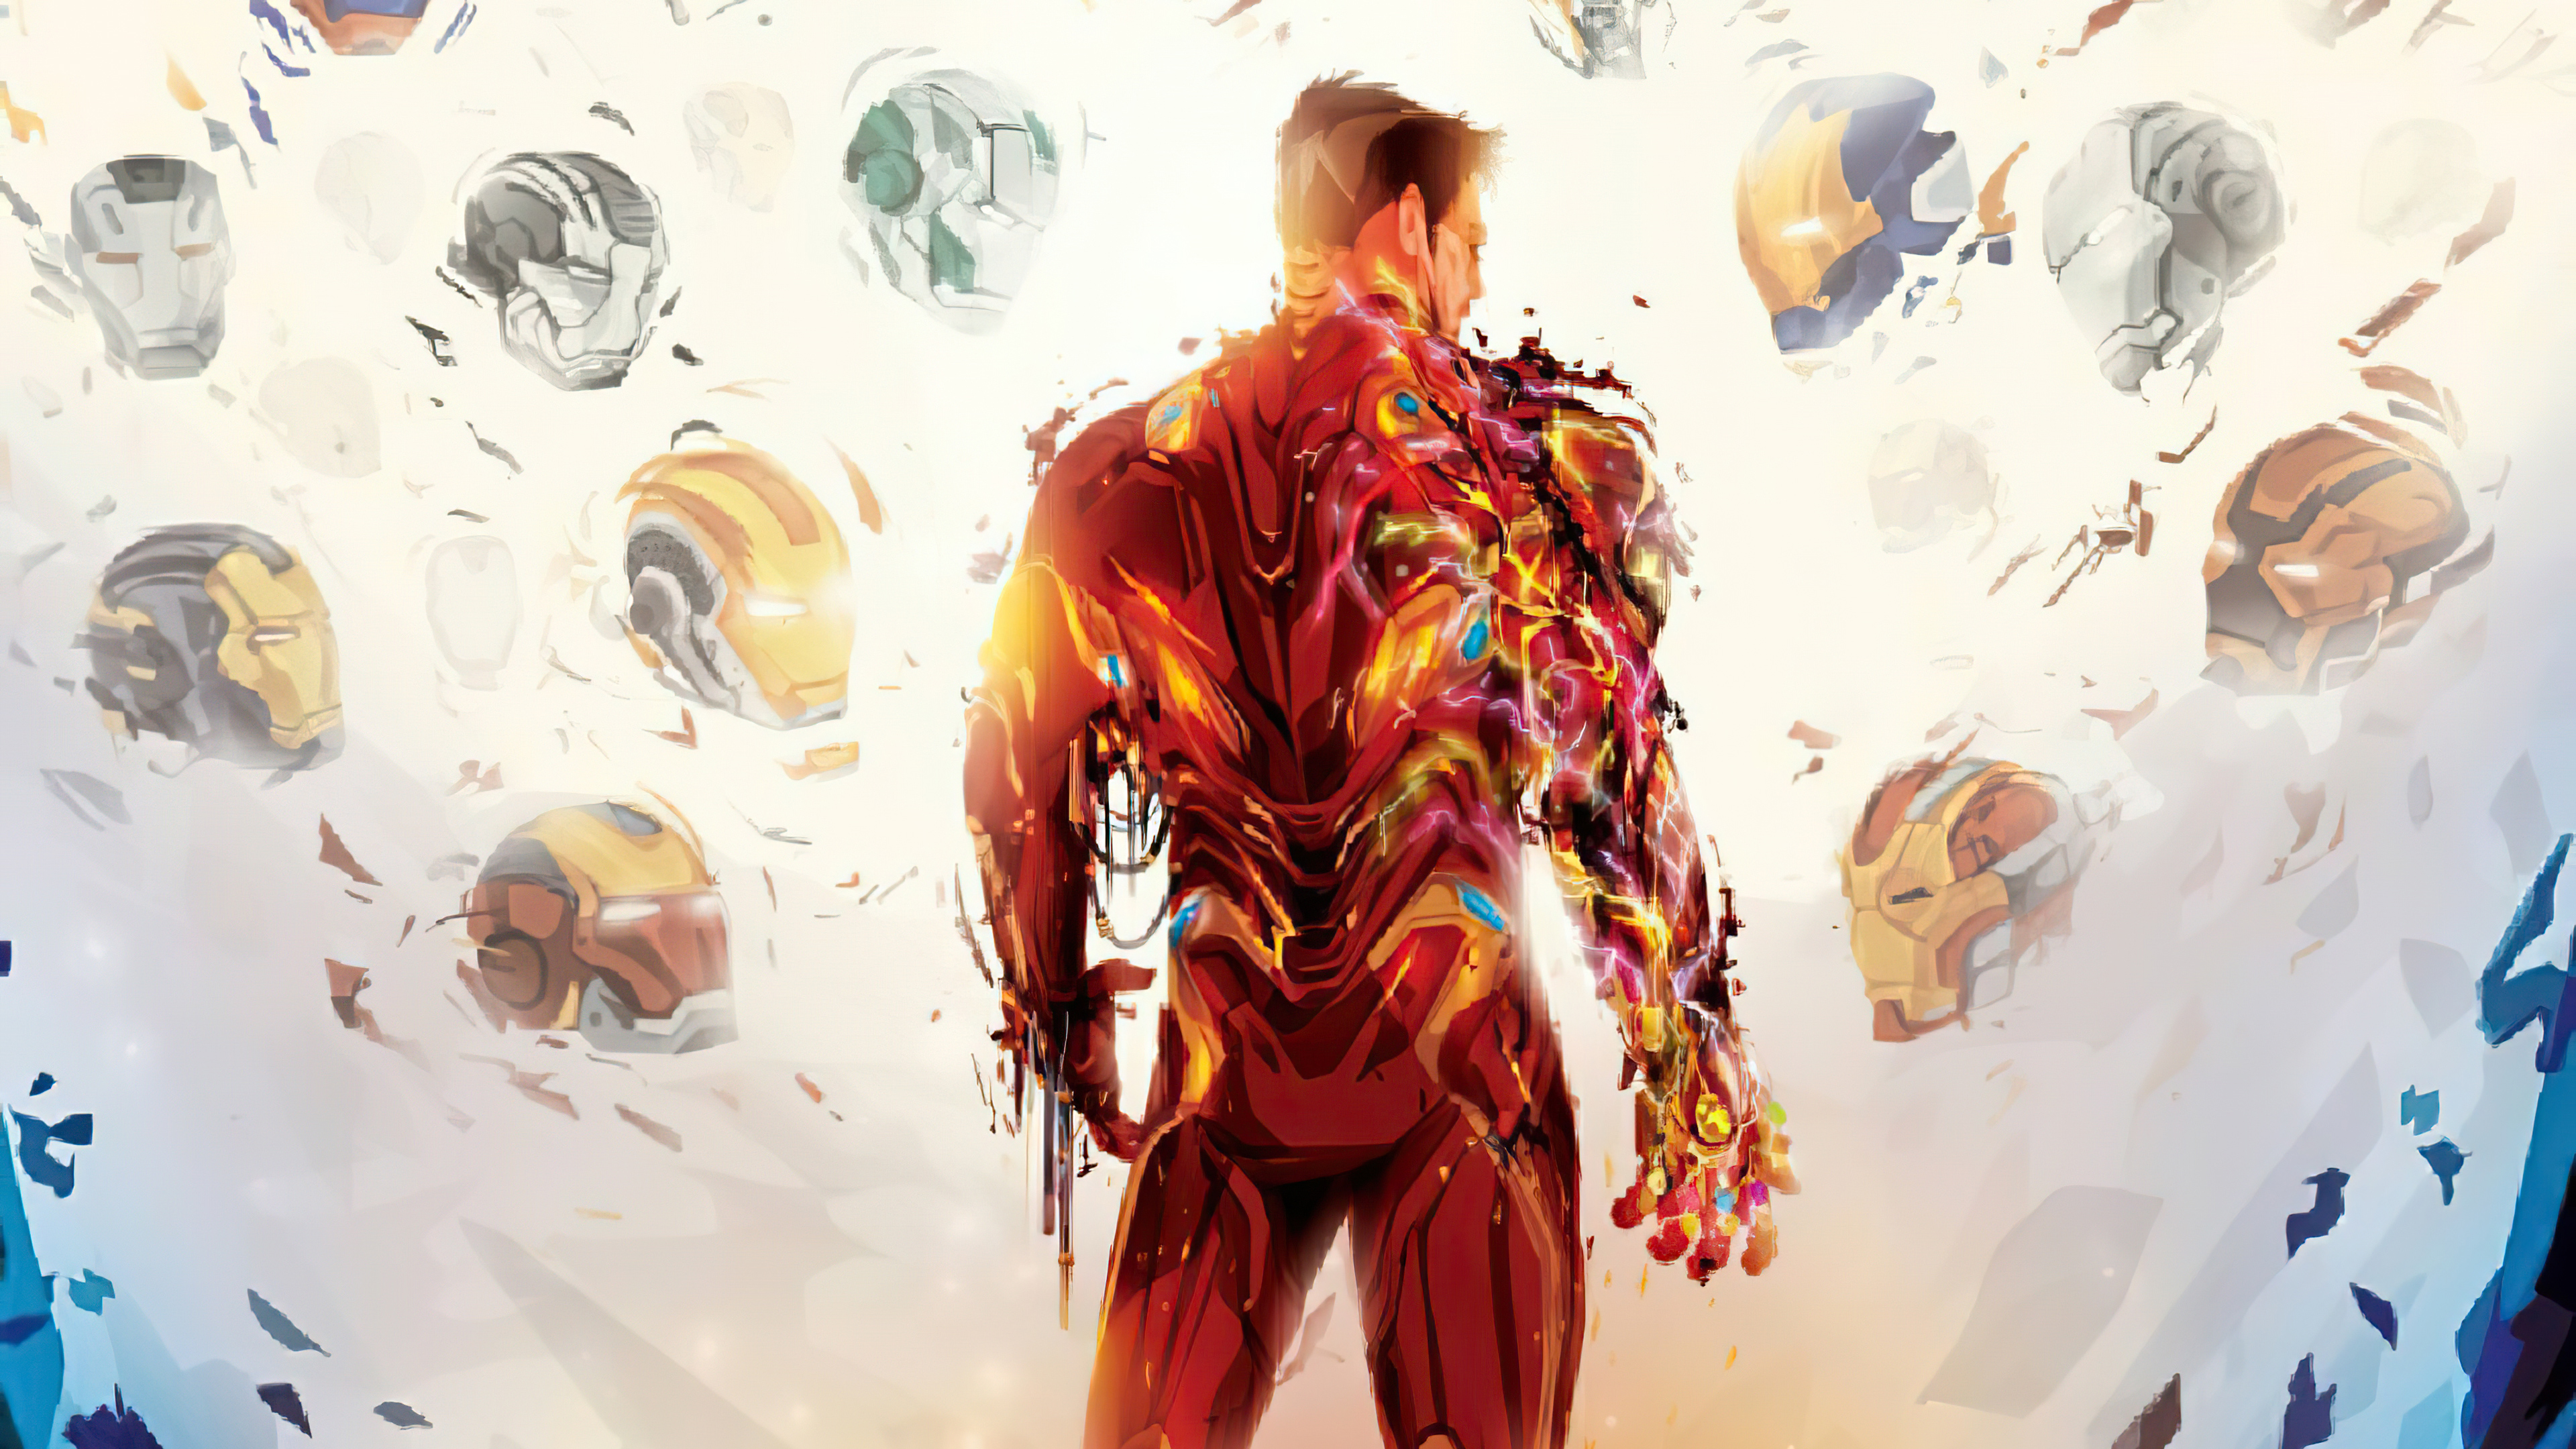 Wallpaper Iron man from the back